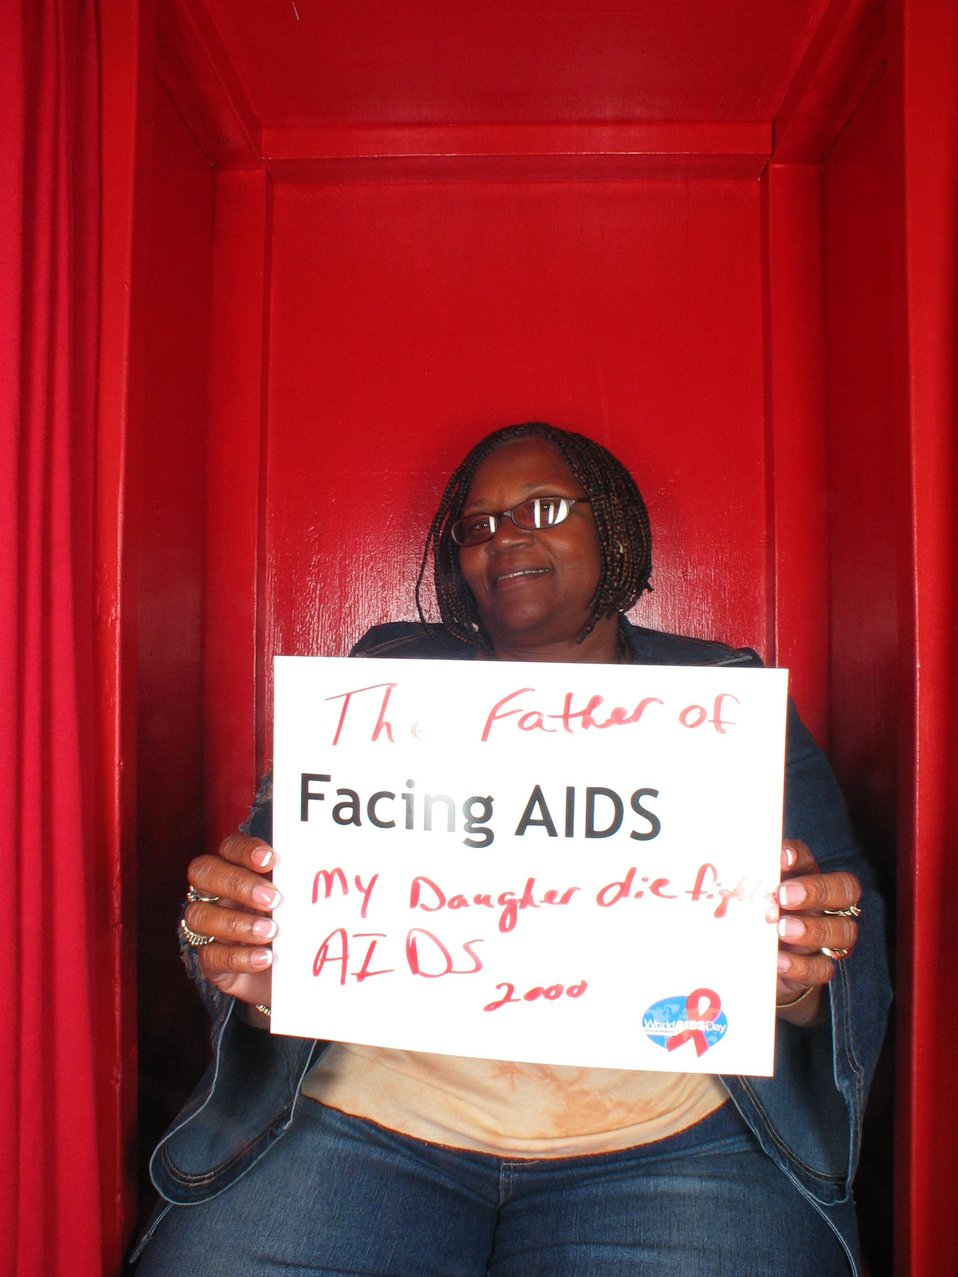 Facing AIDS The father of my daughter died of AIDS.